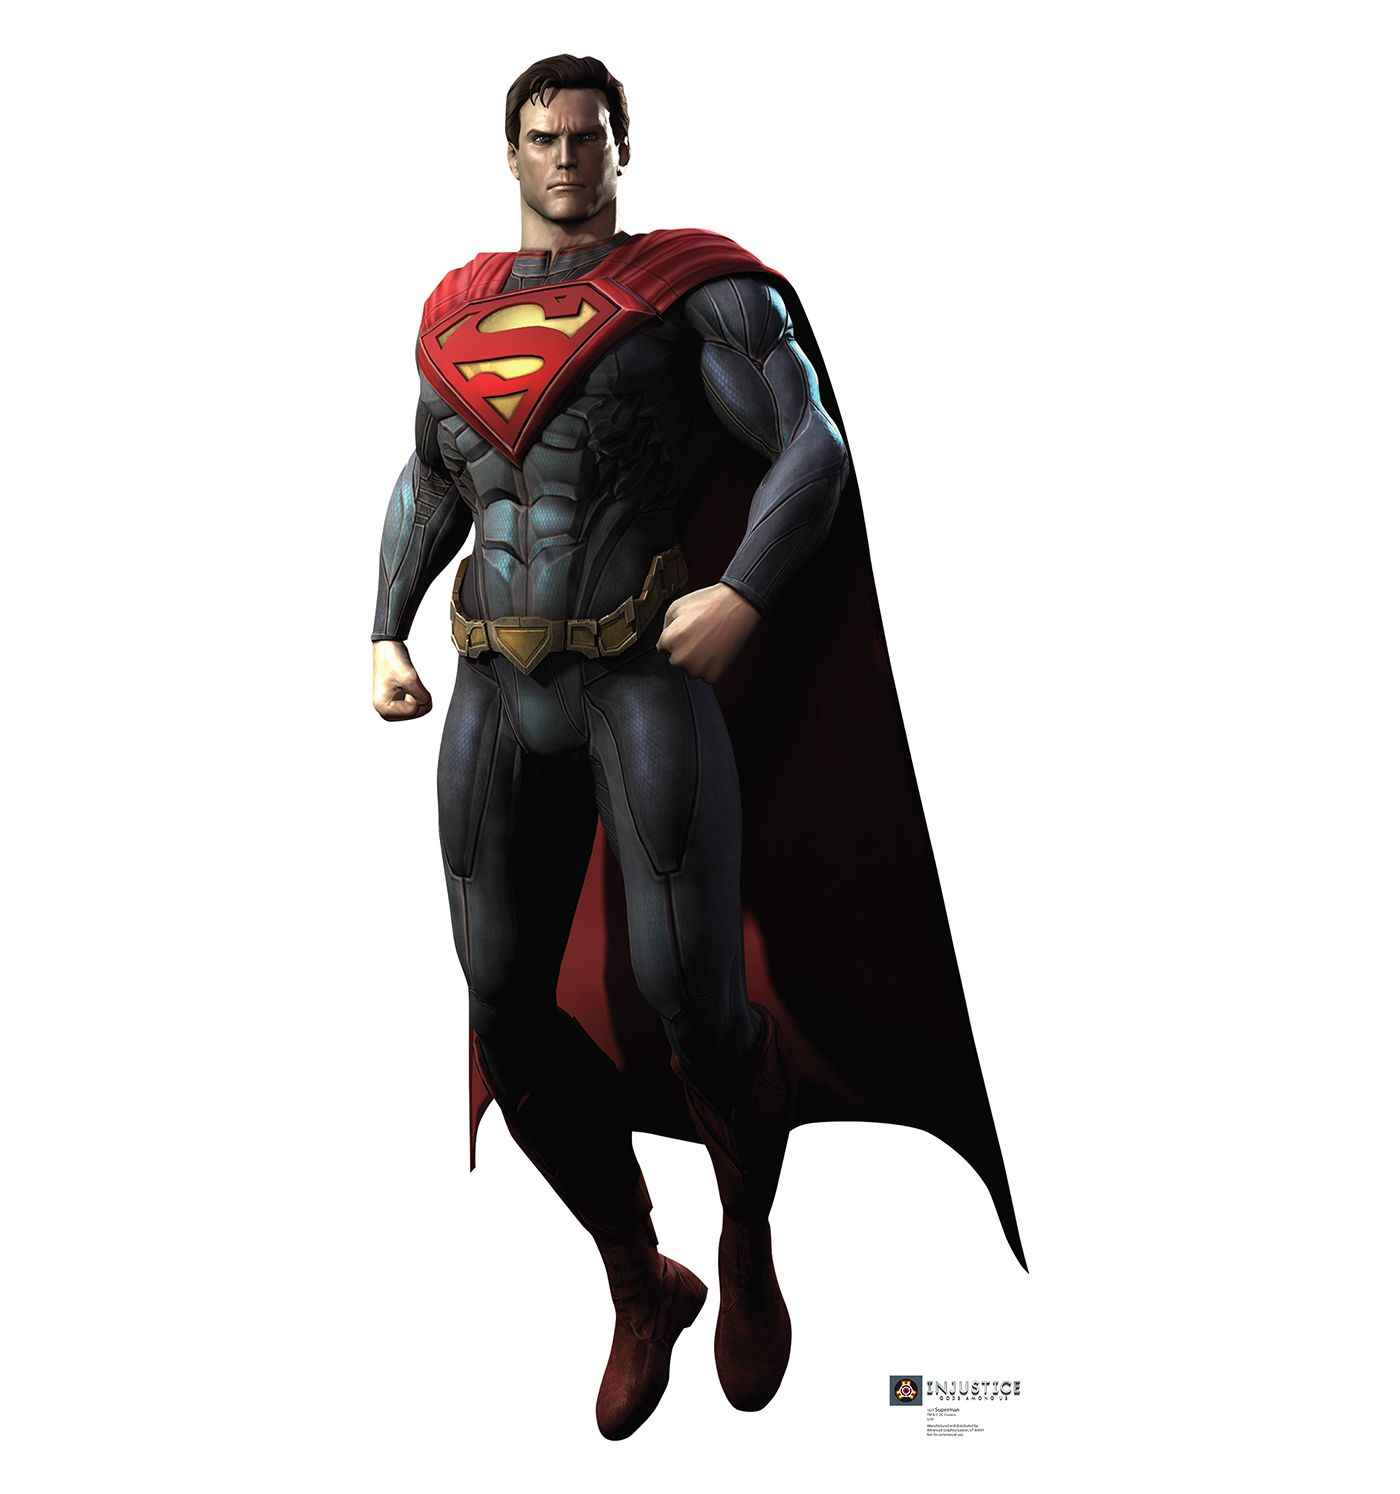 the life of superman the essay This month marks the 75th anniversary of superman's first appearance in action comics #1, the launch of a new superman comic (superman unchained), and the debut of man of steel, the first completely fresh take on superman to arrive in theatres since 1978.